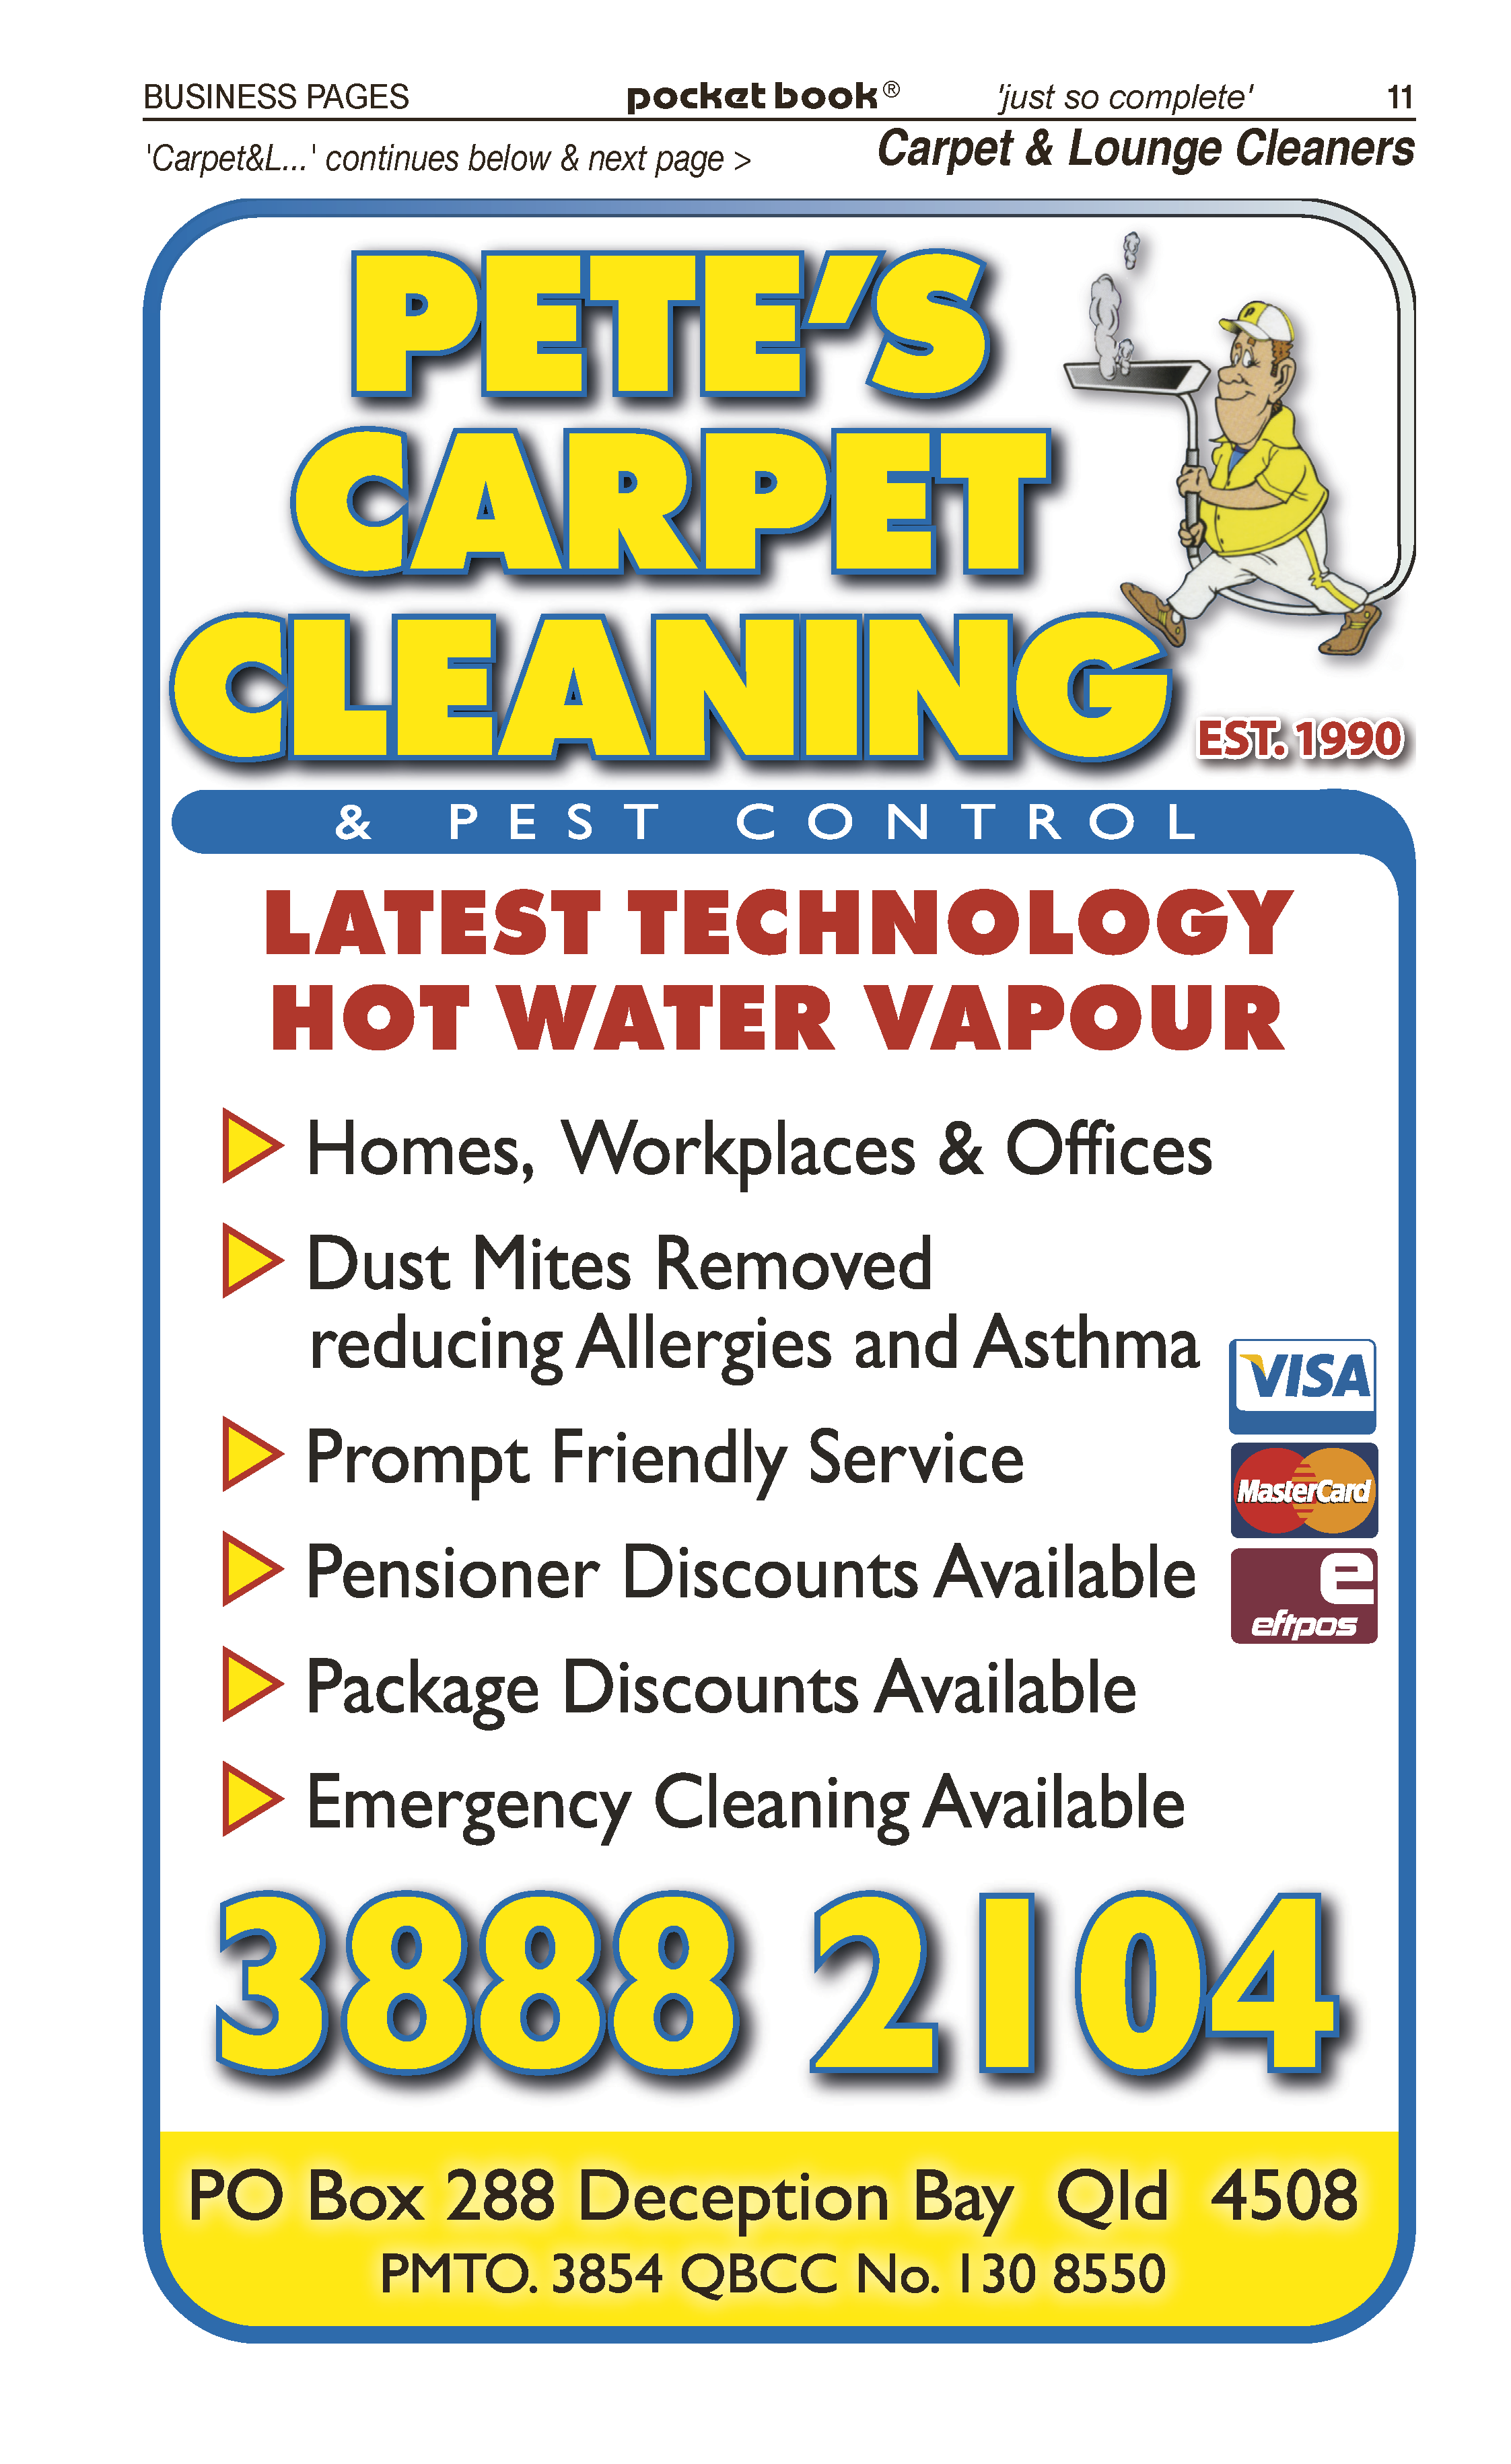 Pete's Carpet Cleaning & Pest Control | Upholstery Cleaners in Deception Bay | PBezy Pocket Books local directories - page 11